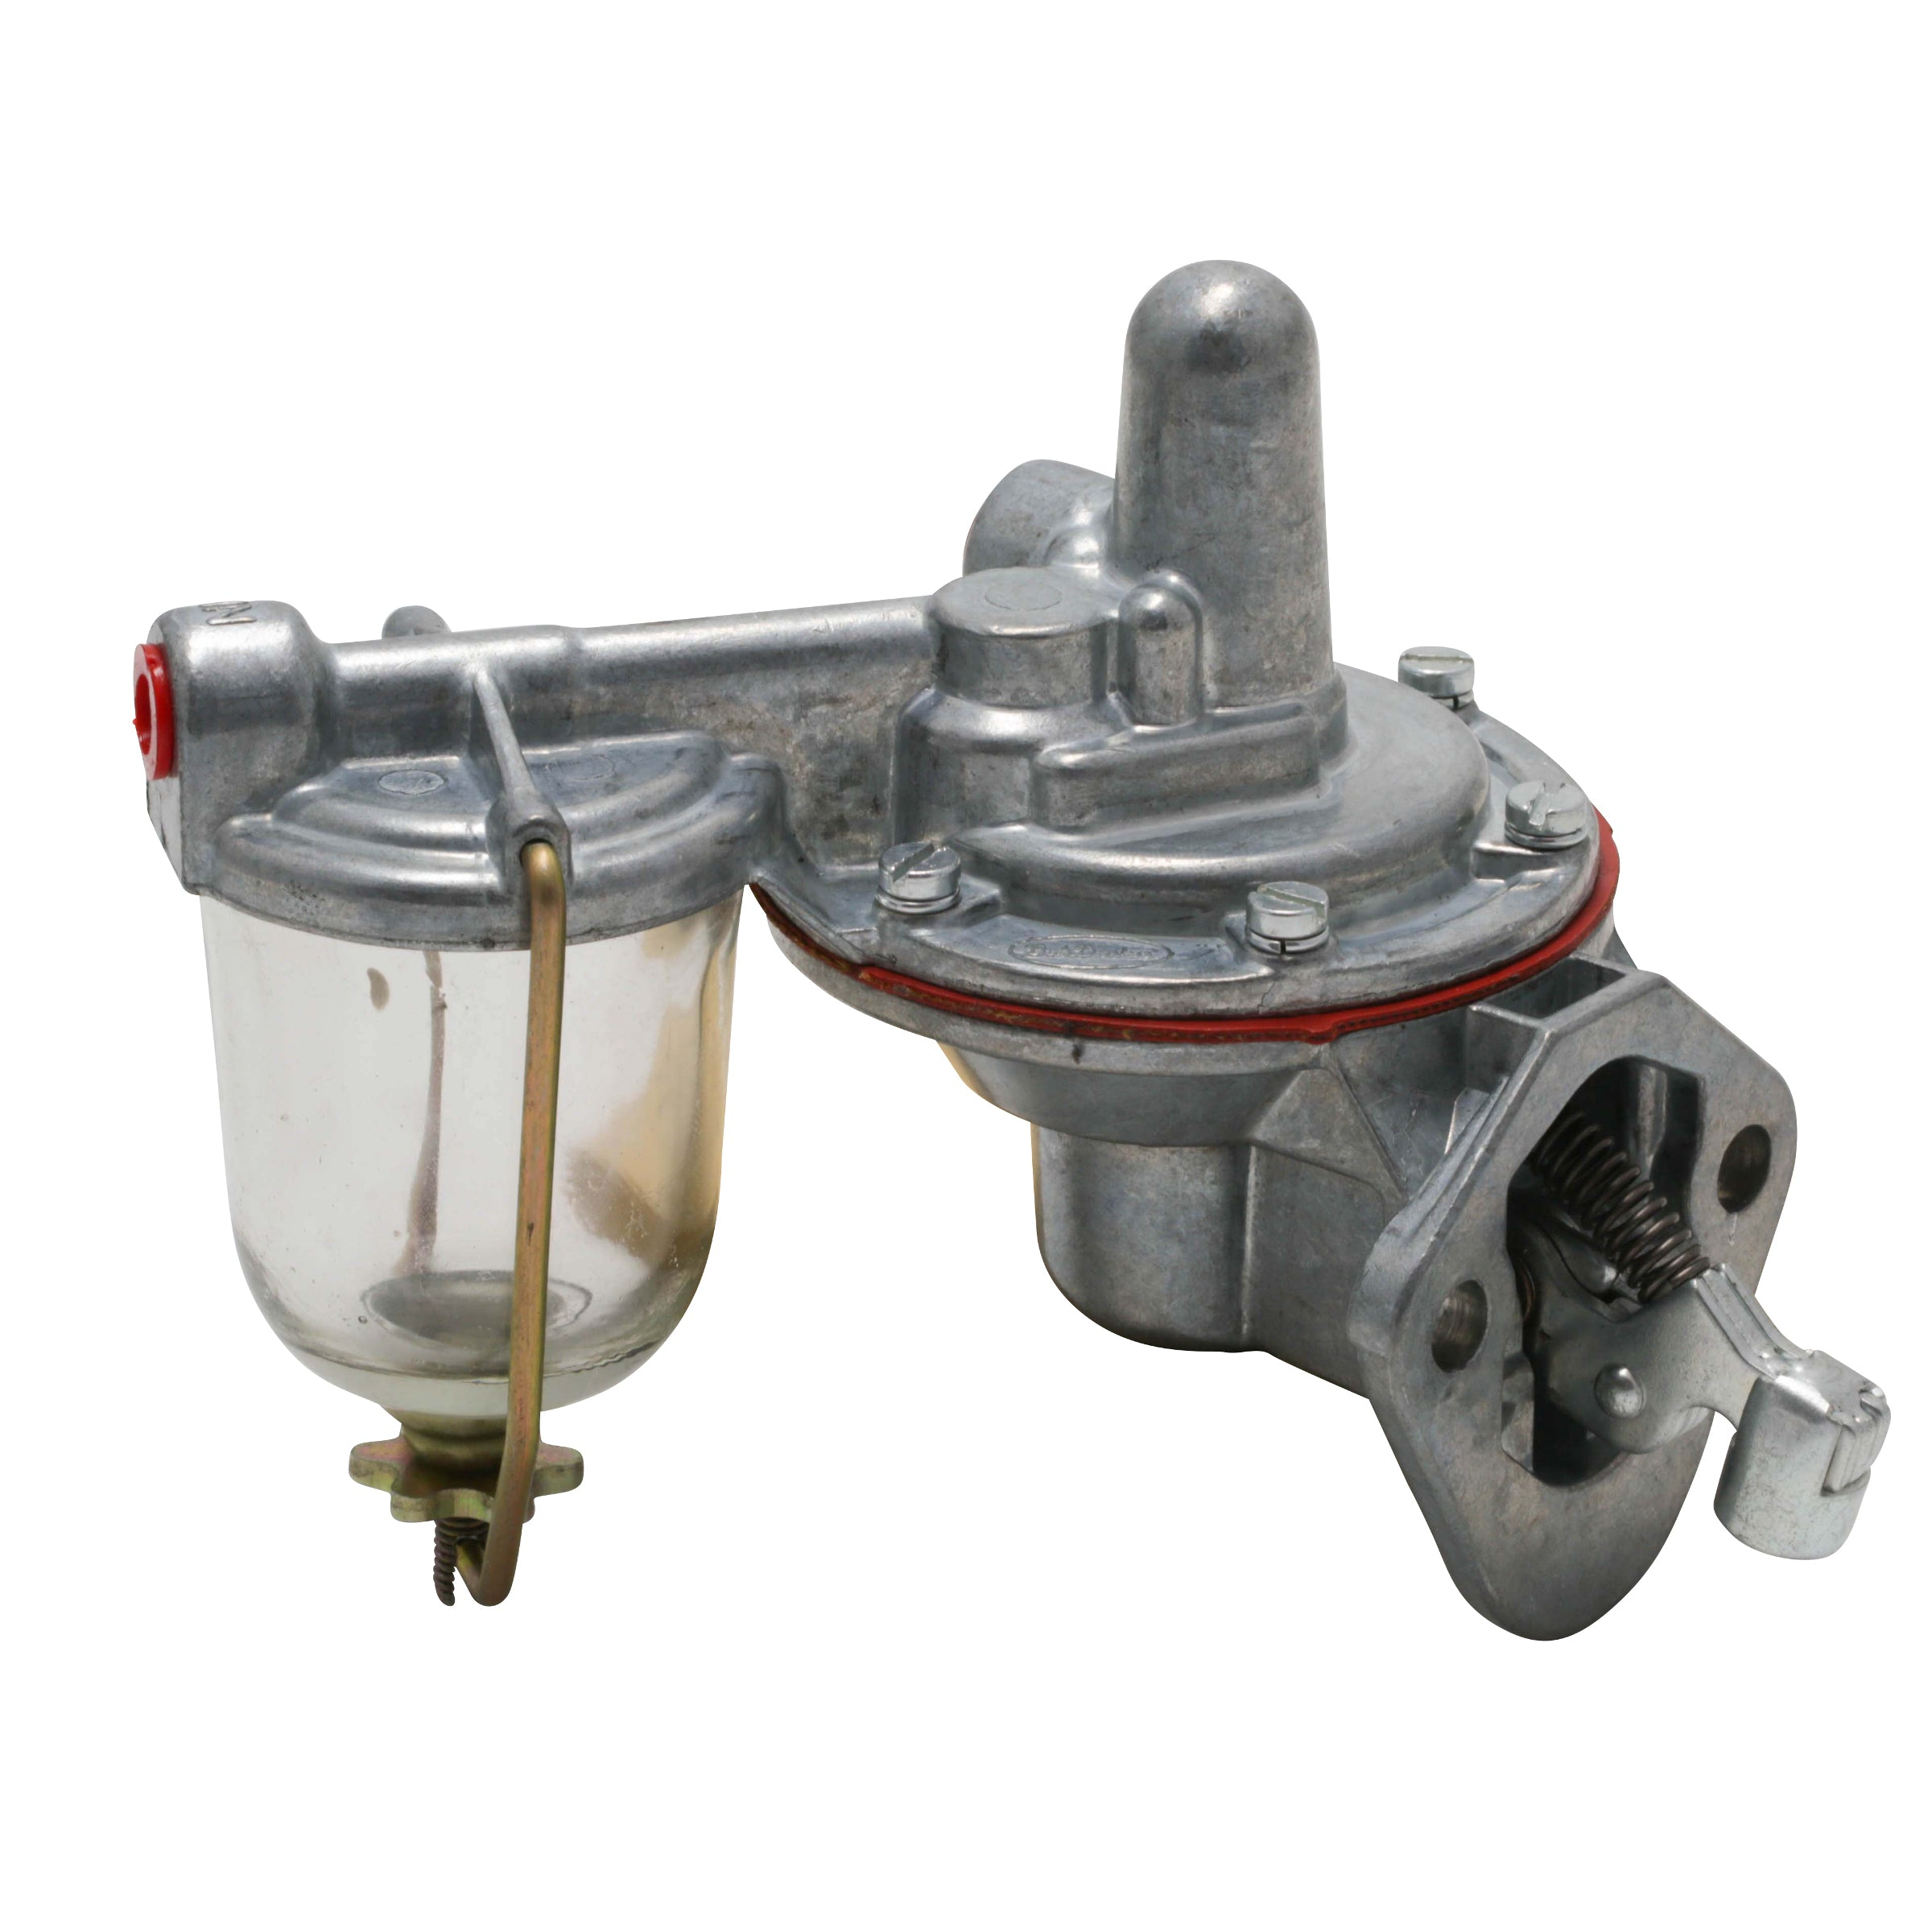 Fuel Pump Assembly (Single Action) • 1951-53 Ford V-8